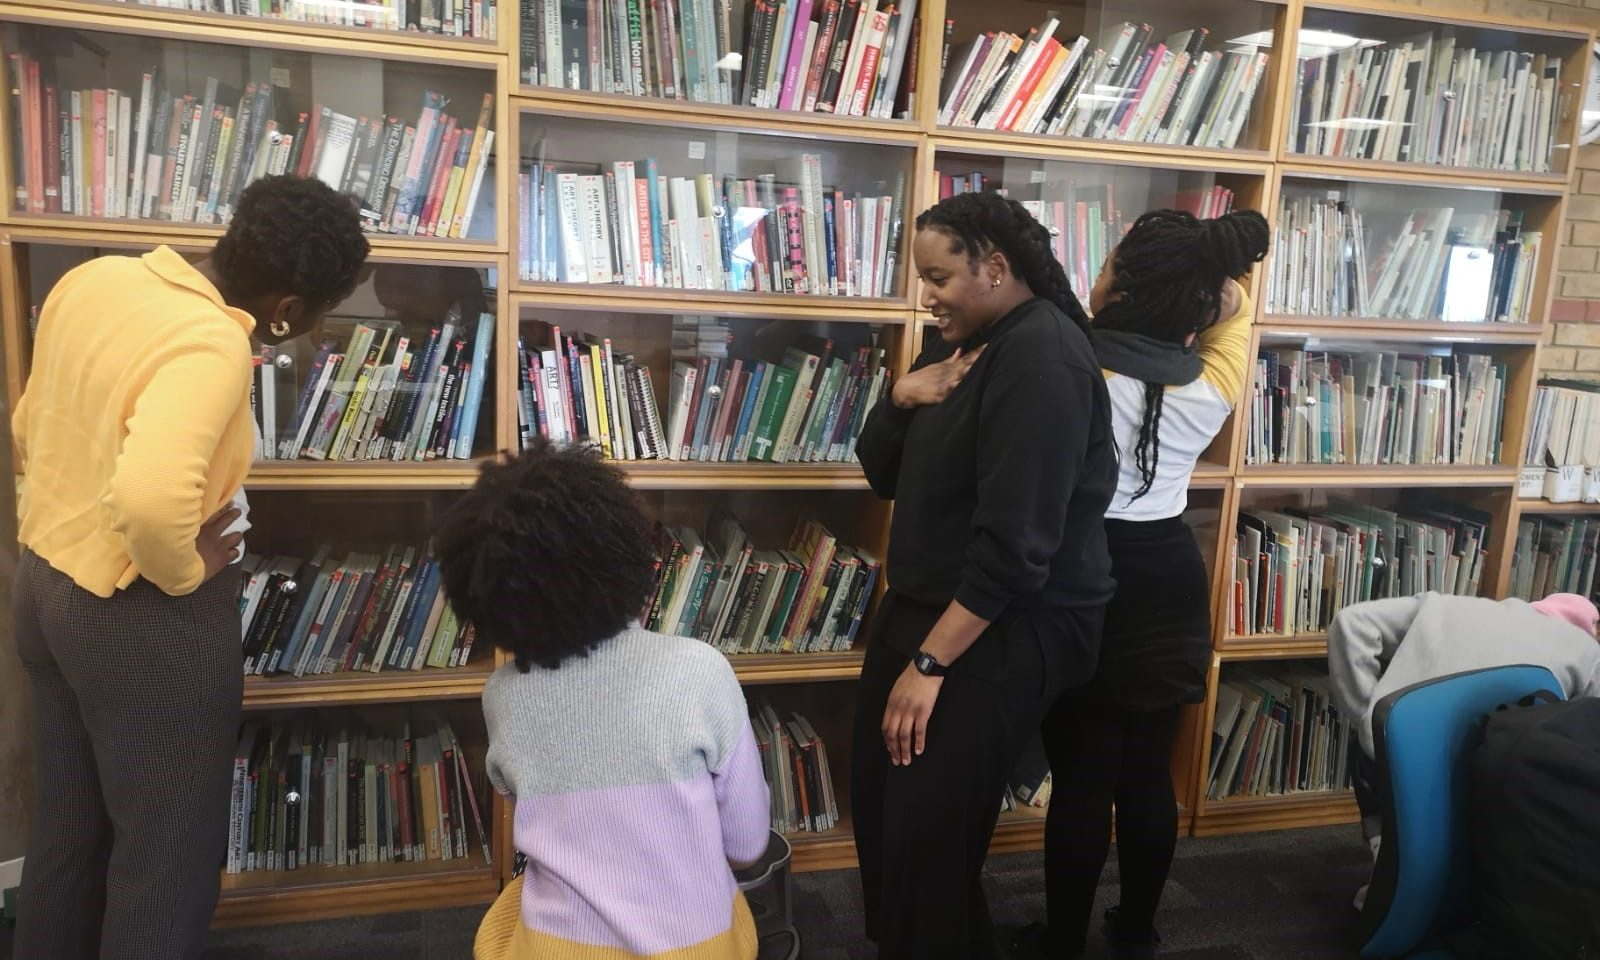 Four people stood in a library looking at the book shelves